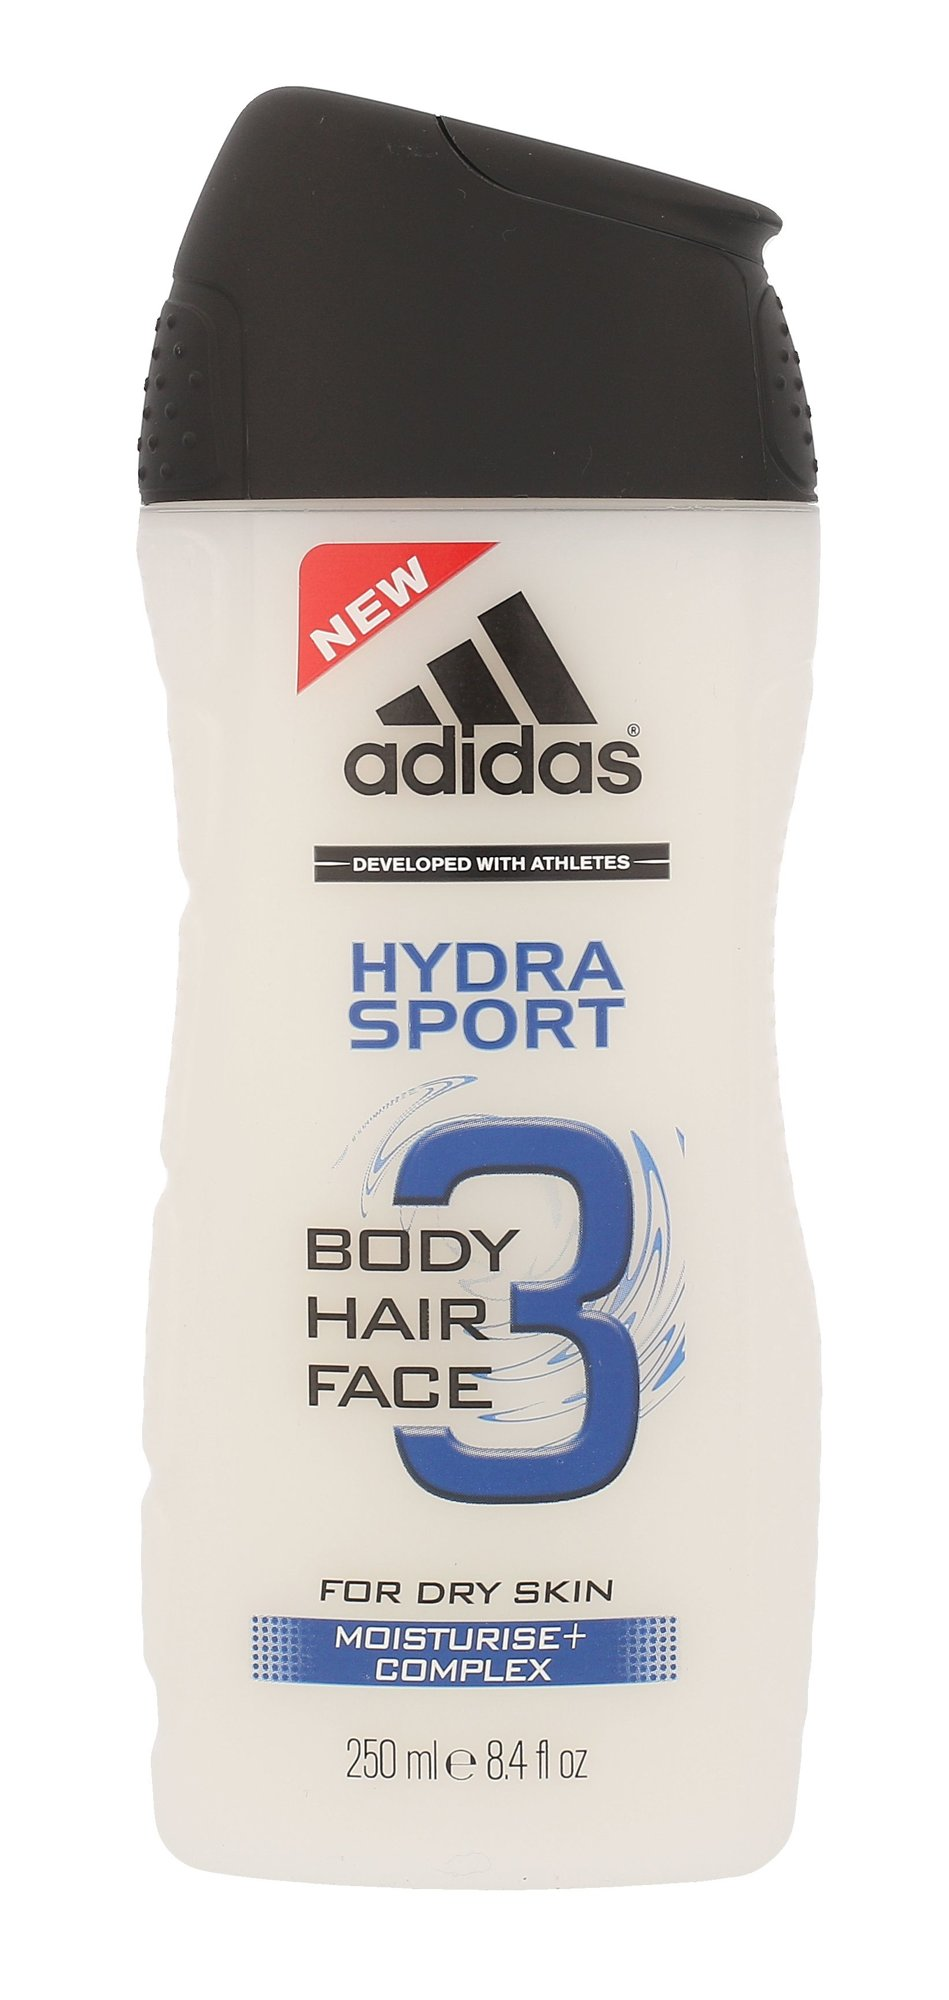 Adidas Hydra Sport Shower gel 250ml